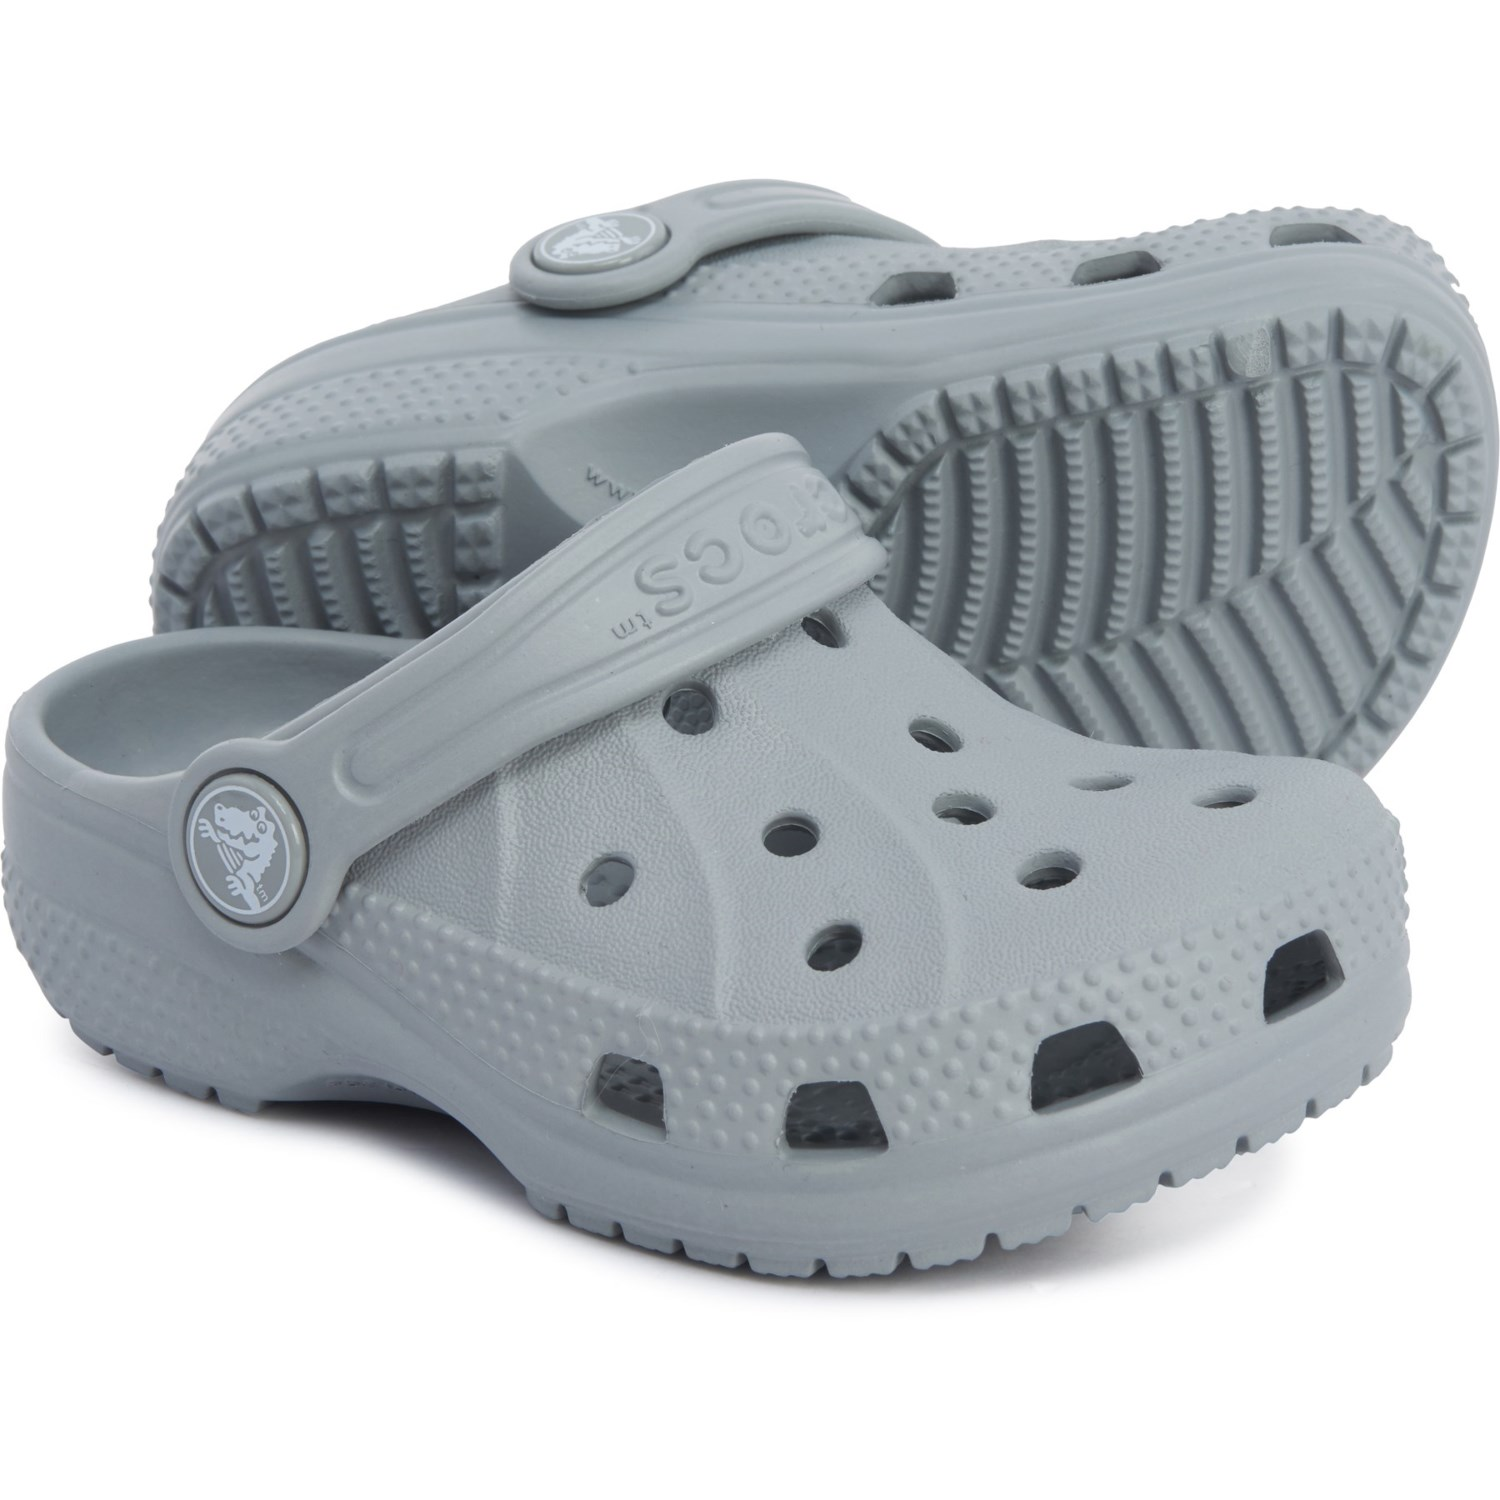 newest new arrival world-wide renown Crocs Light Grey Ralen Clogs (For Boys) - Save 40%